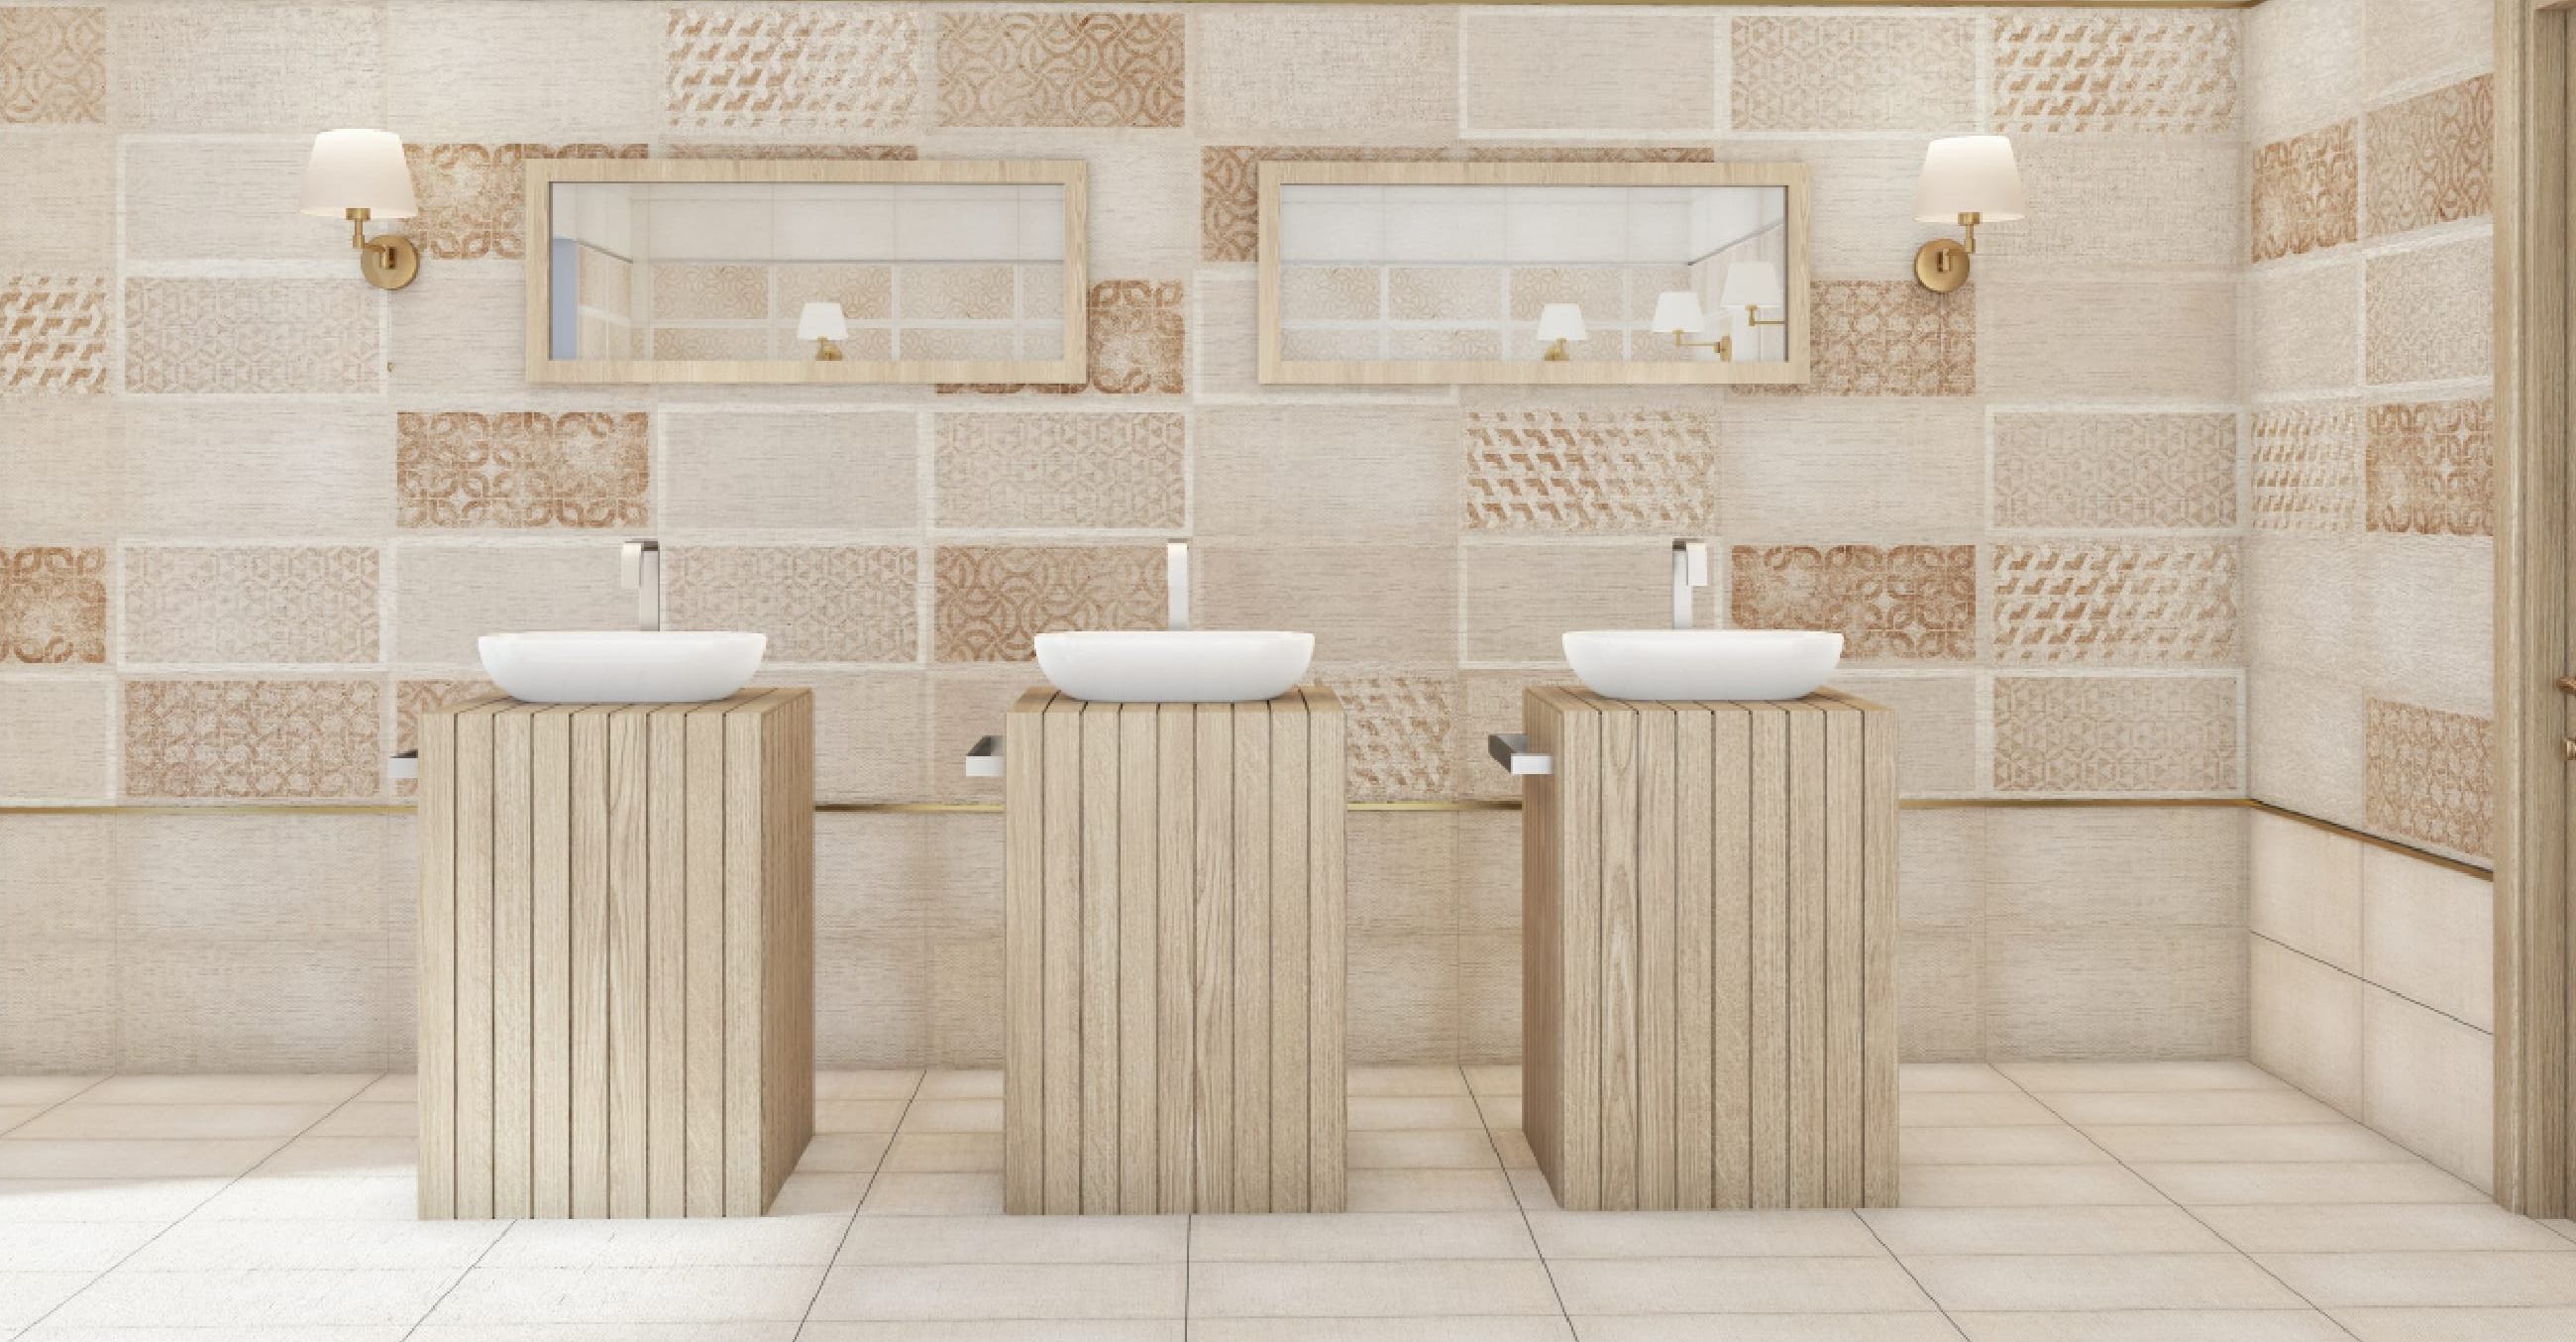 10 - Incredible Bathroom Wall Tile Design Options From Q-BO Ceramics